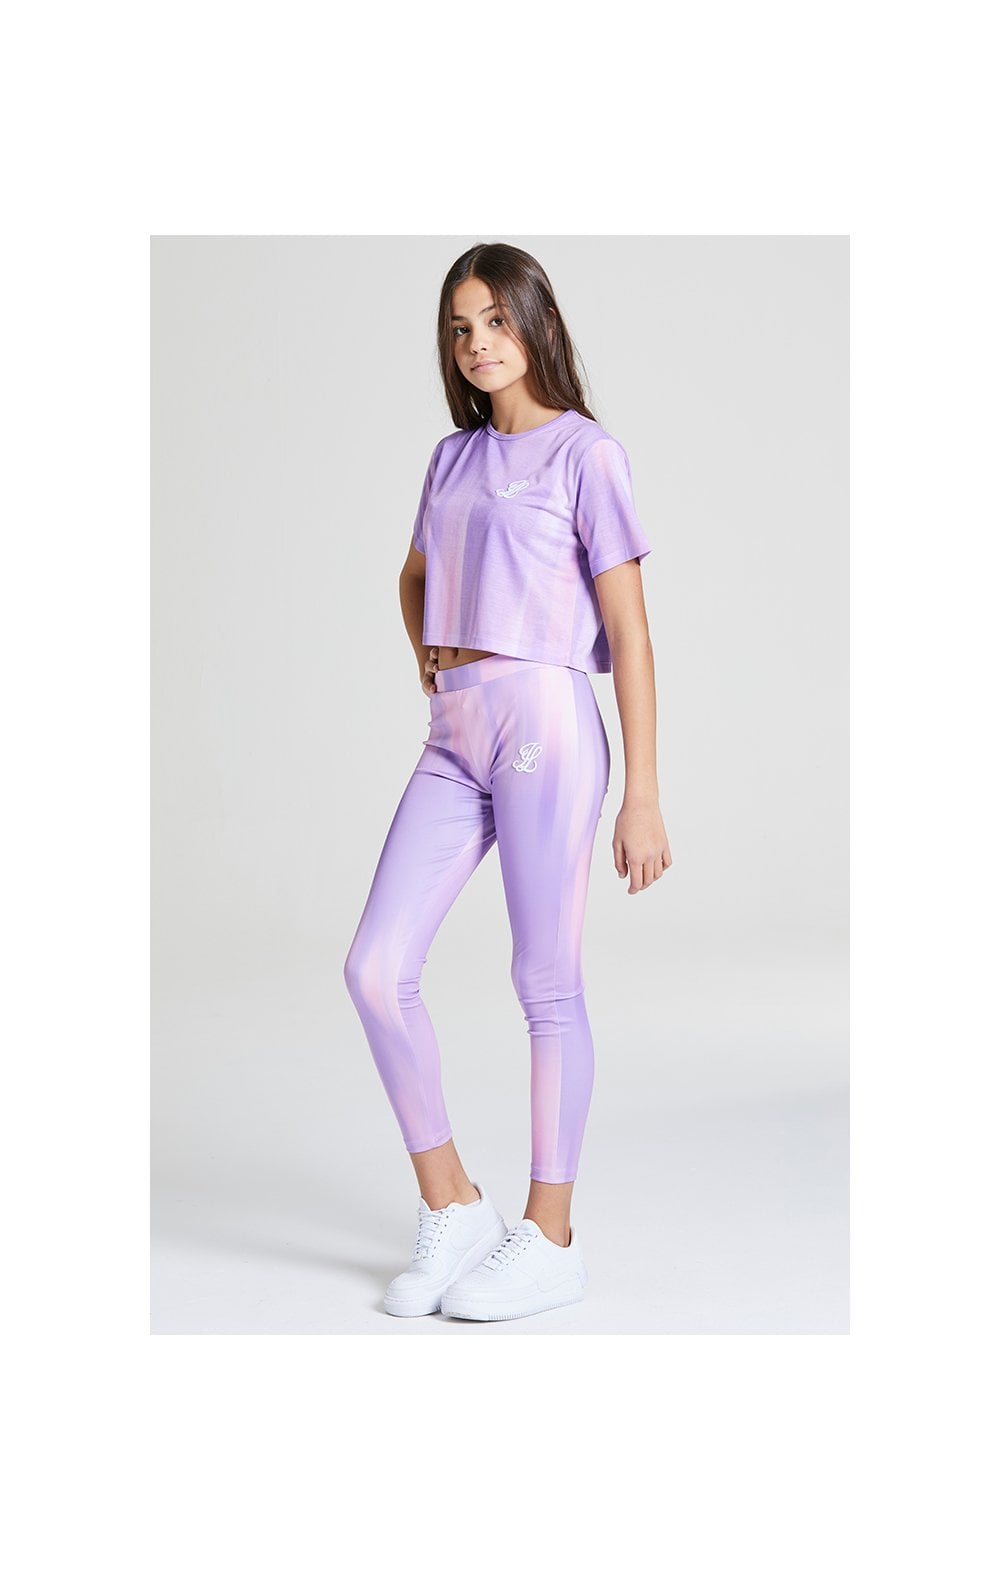 Illusive London Cropped Marble Tee - Lilac & Marble (3)